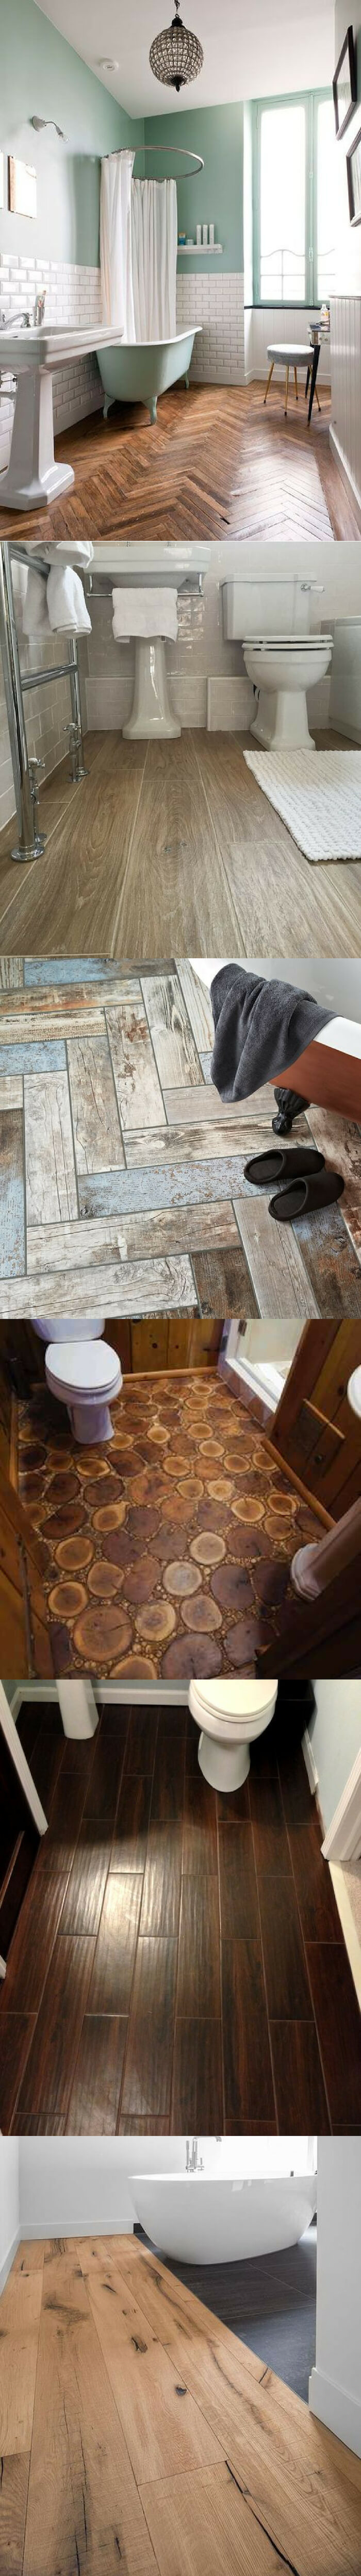 Wood bathroom floor tile ideas